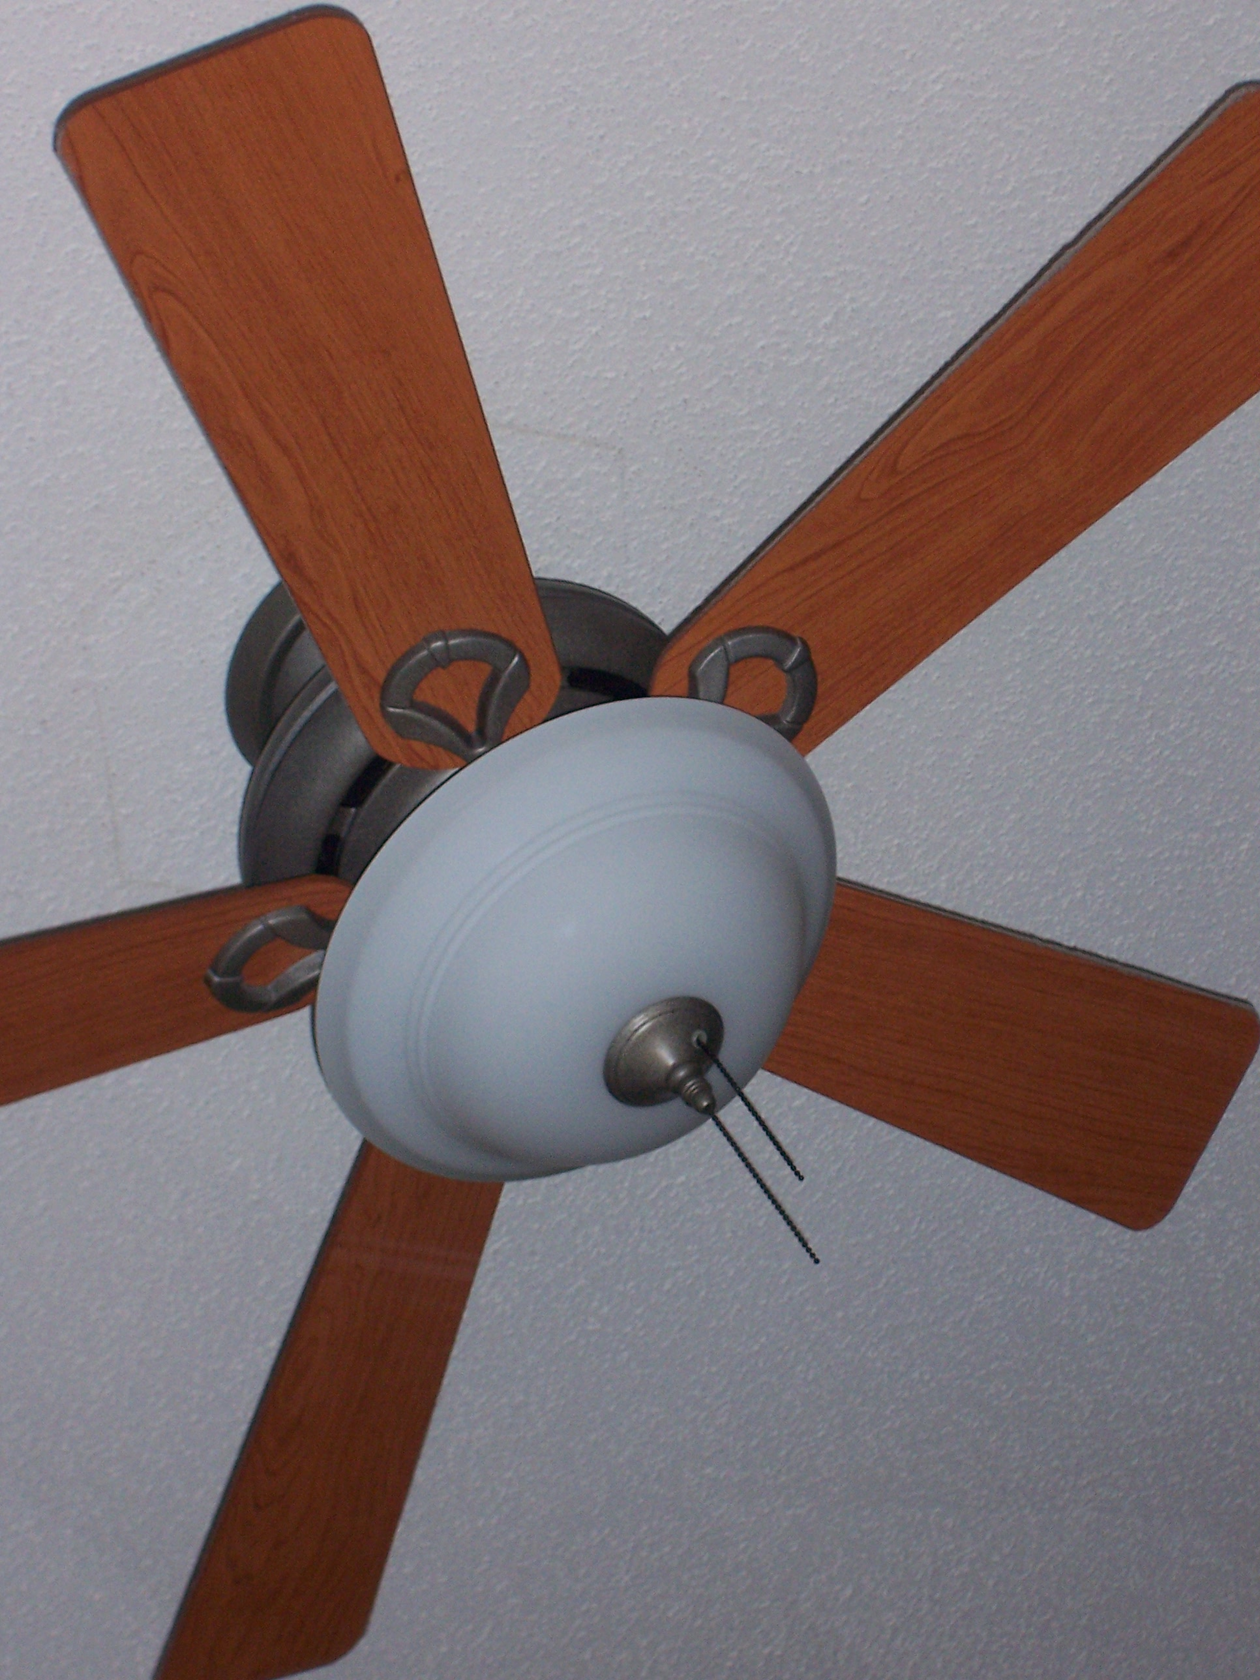 File Ceiling fan Wikimedia mons